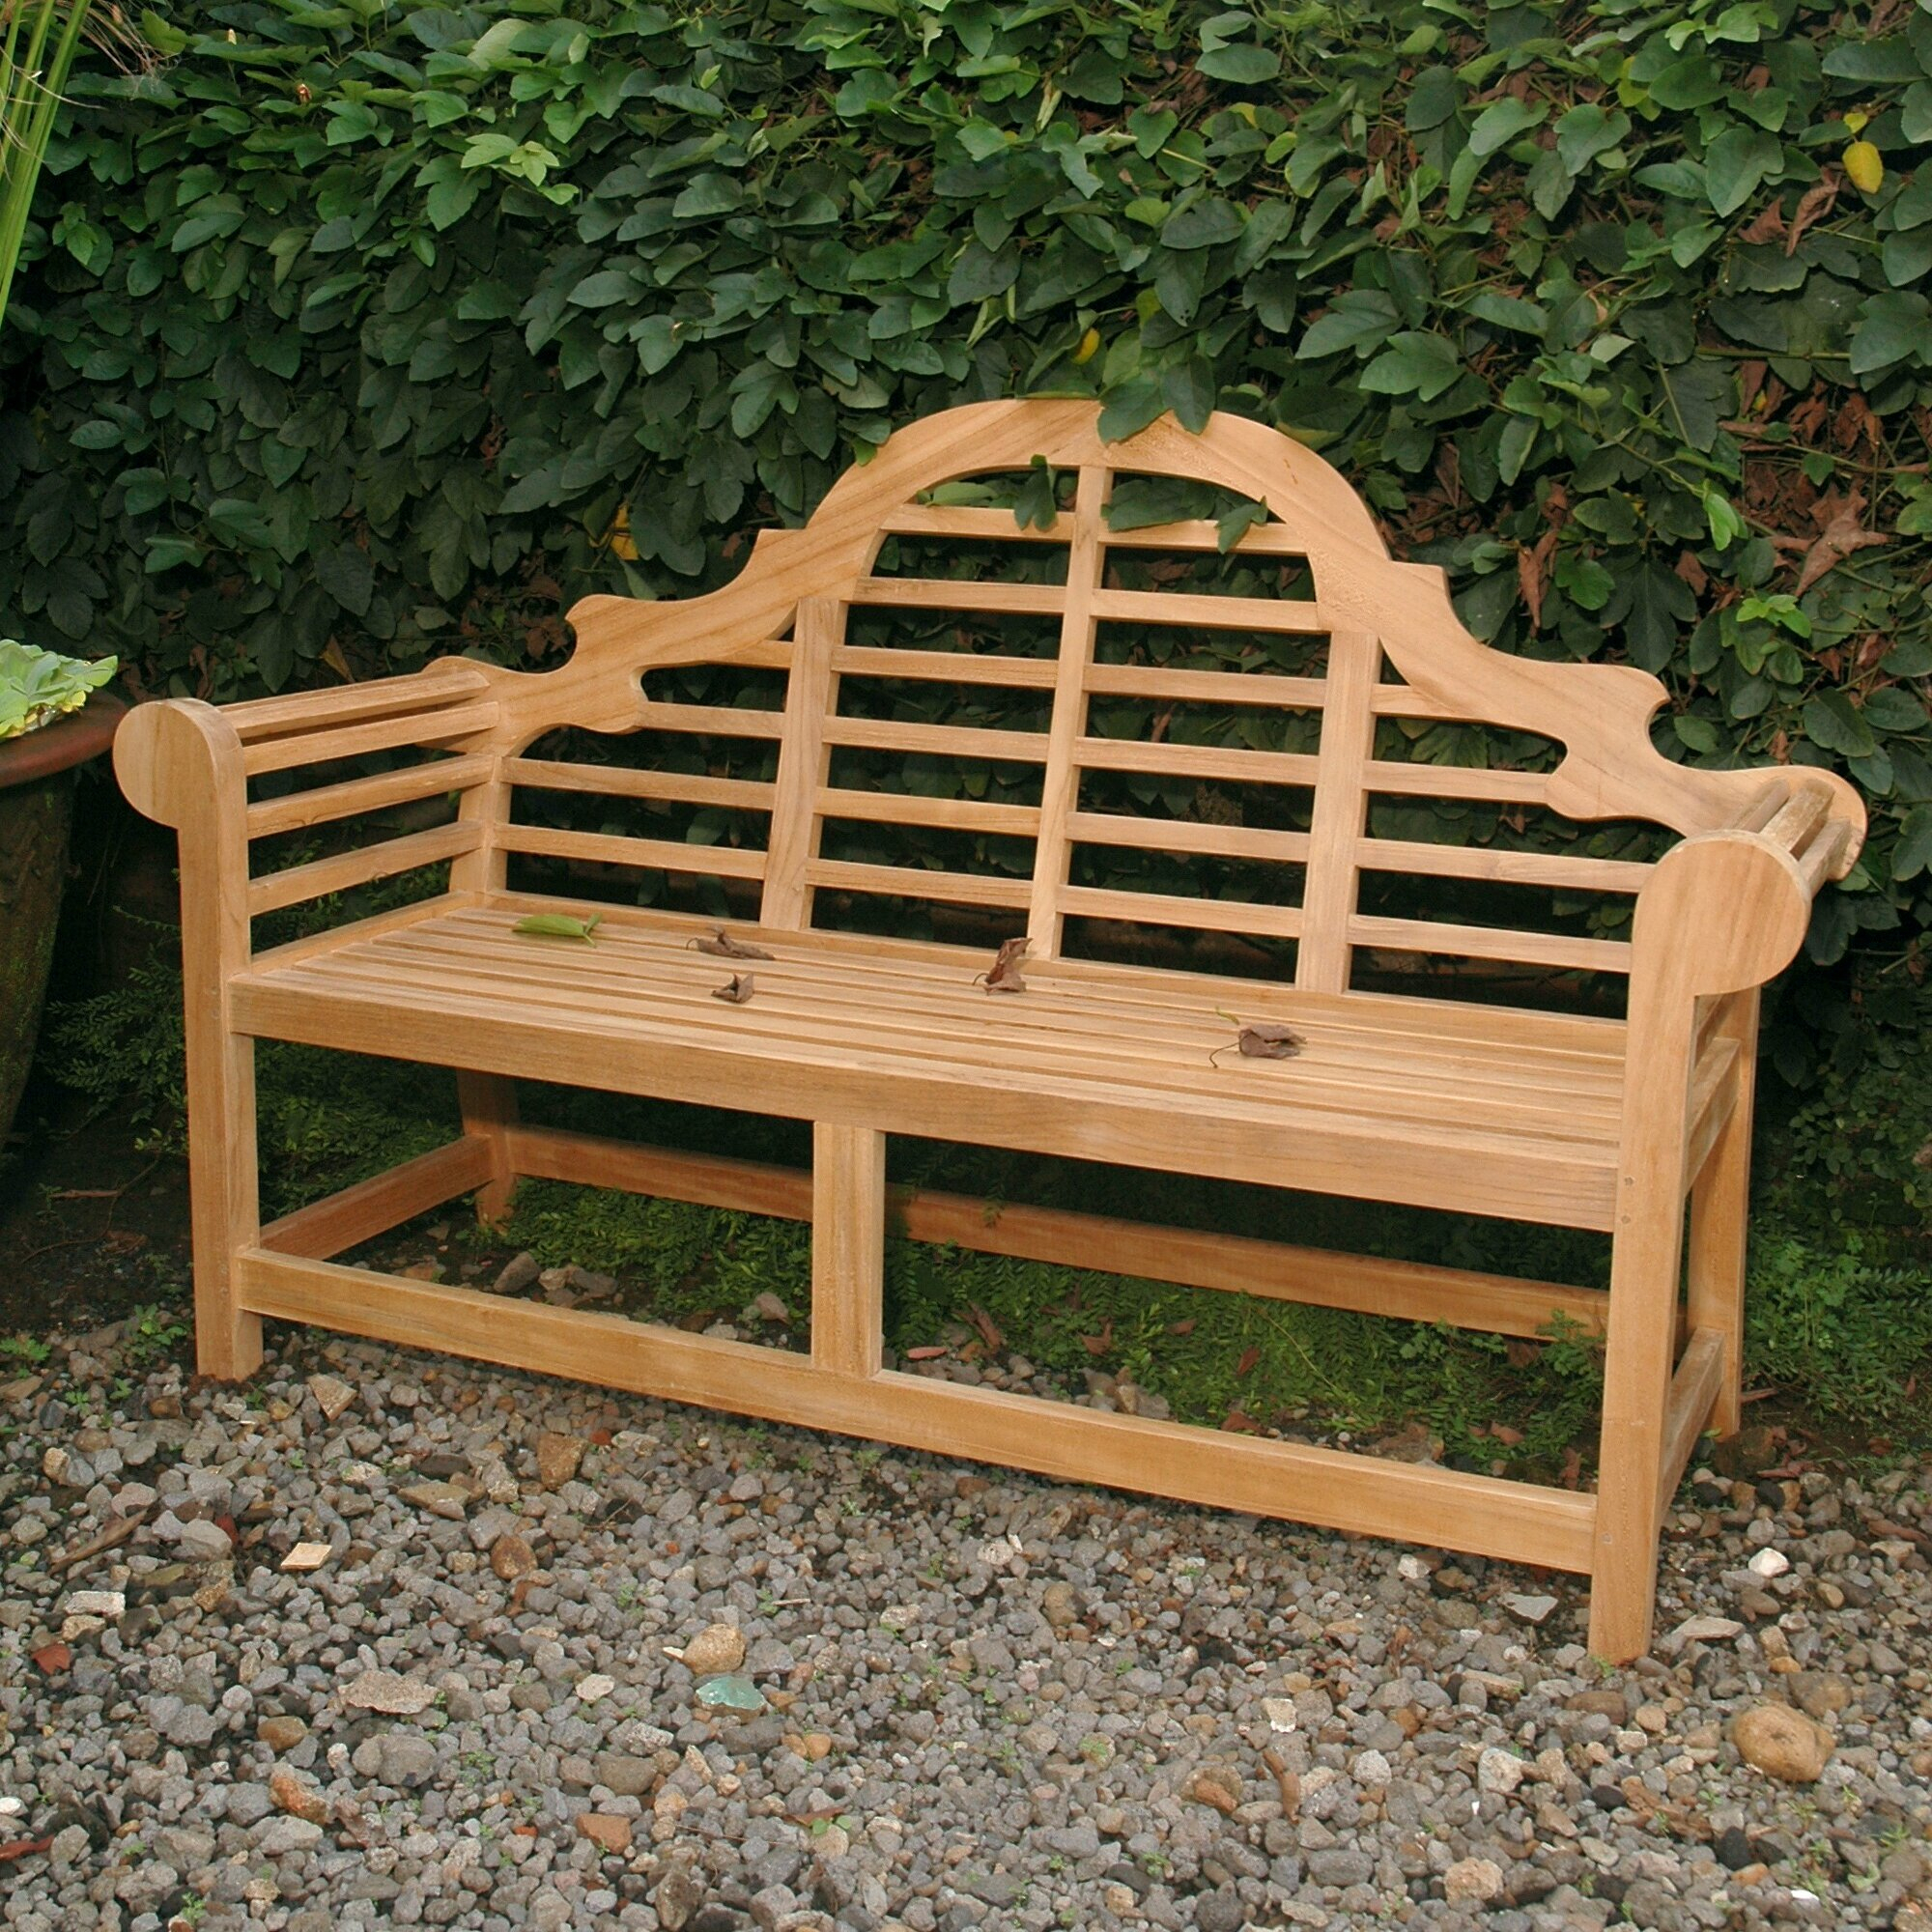 Marlborough Teak Garden Bench Throughout Wallie Teak Garden Benches (View 4 of 25)